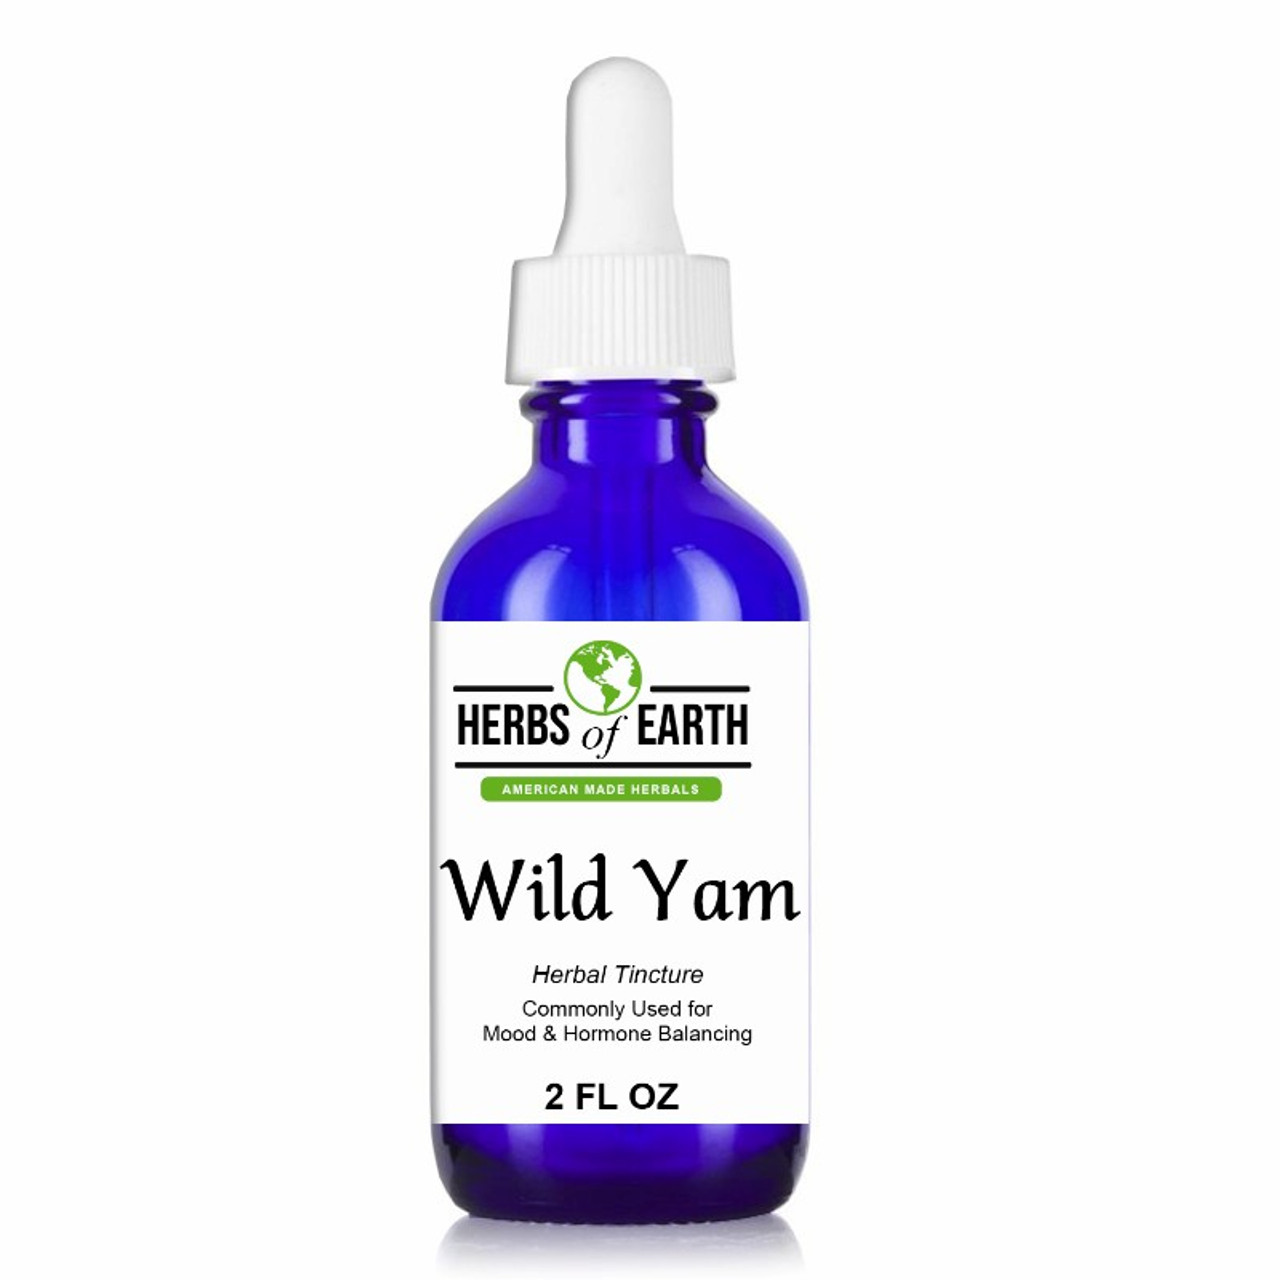 Wild Yam Herbal Tincture